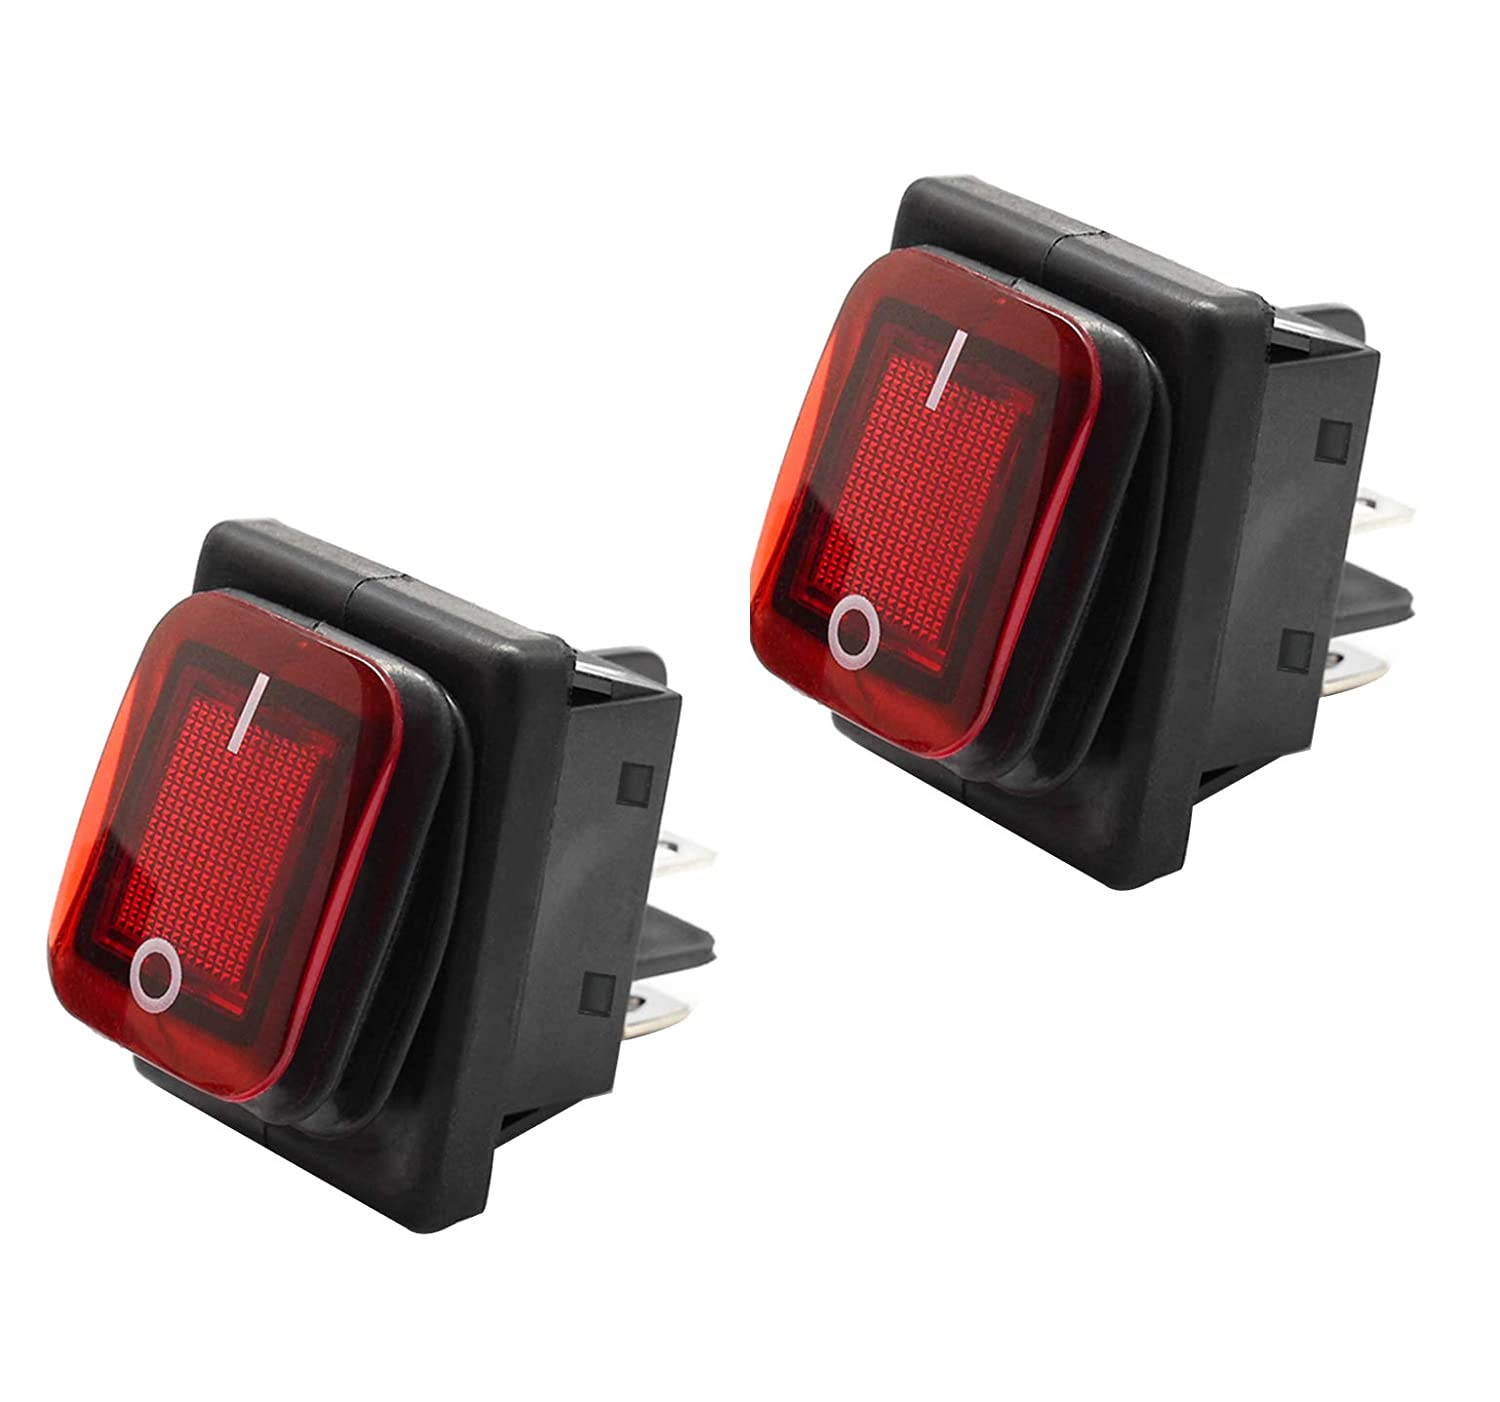 Rocker Toggle Switch On//Off 4 Terminals Red Light 16A 250VAC Waterproof Cover SPST for Car Truck Boat Motorhome NewZC Rocker Switch 2 Pack